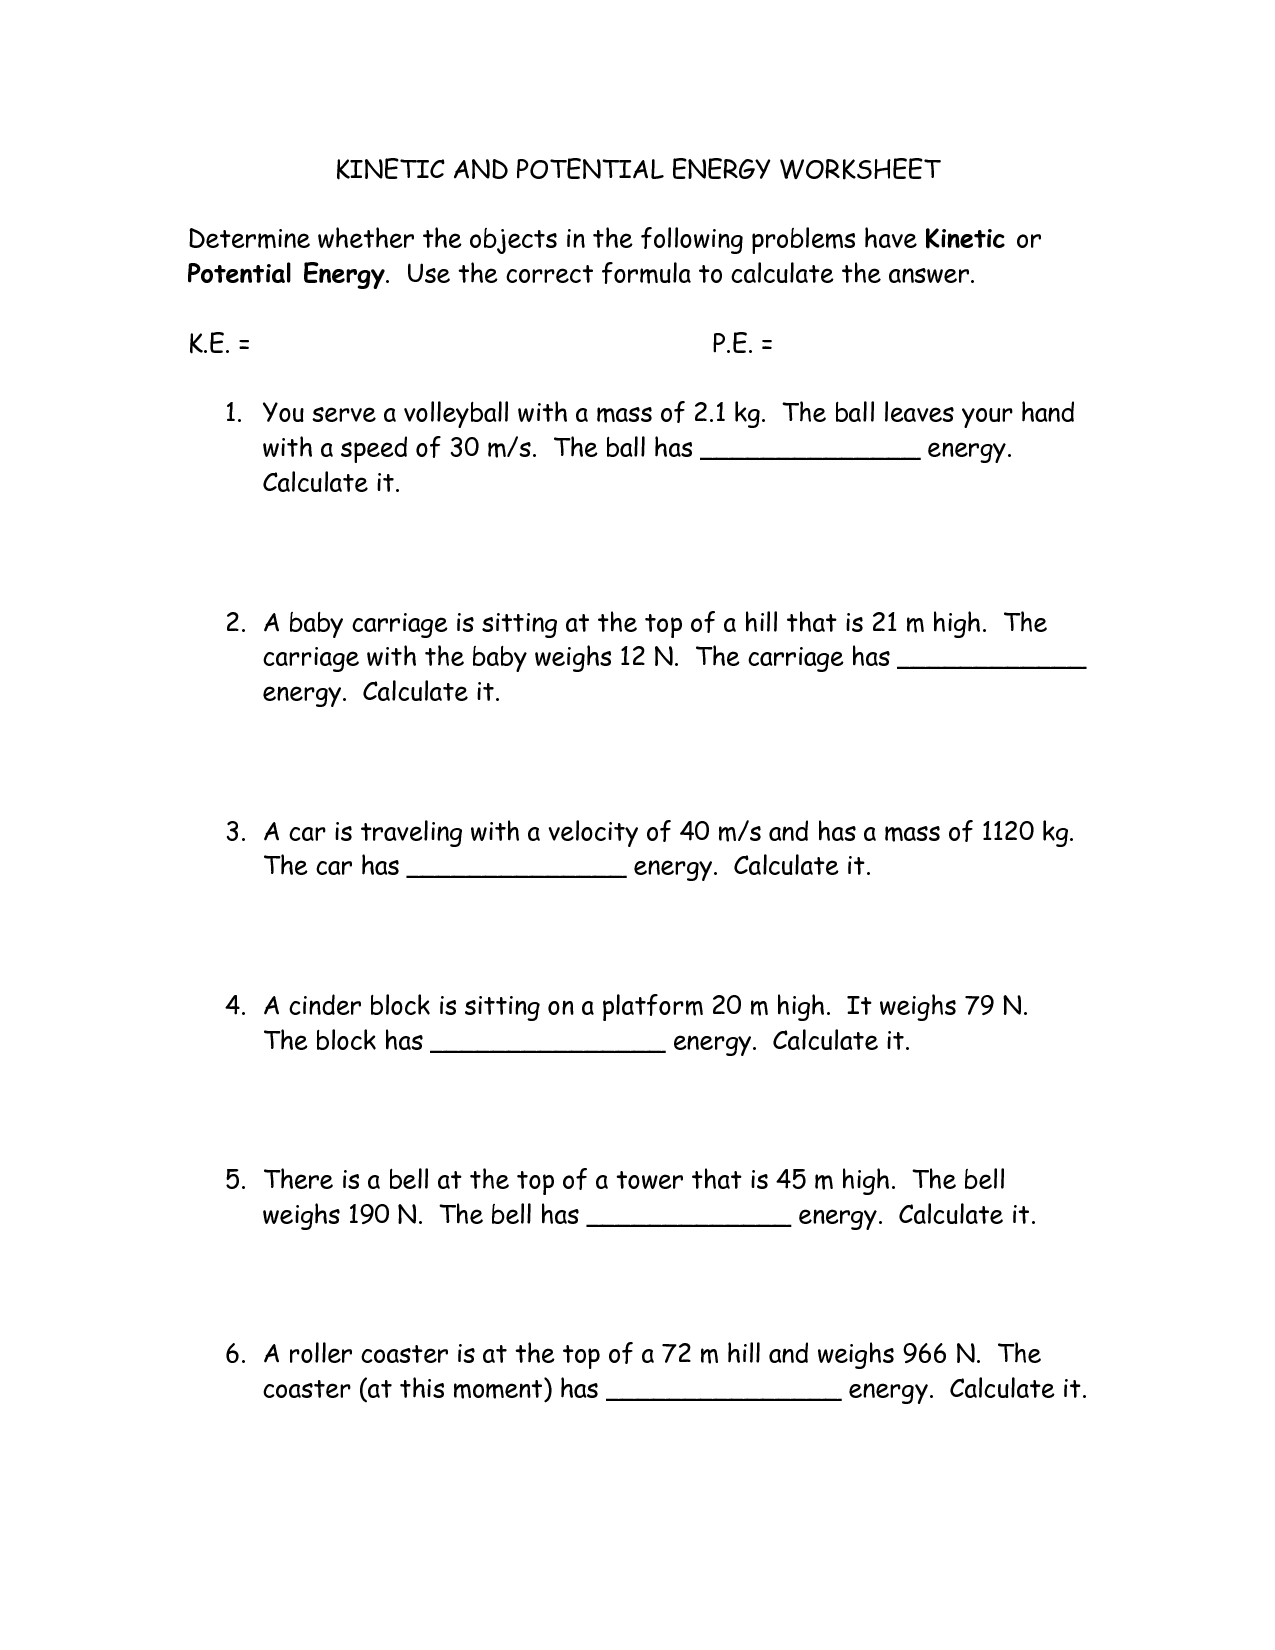 Worksheet 21 Kiic Energy